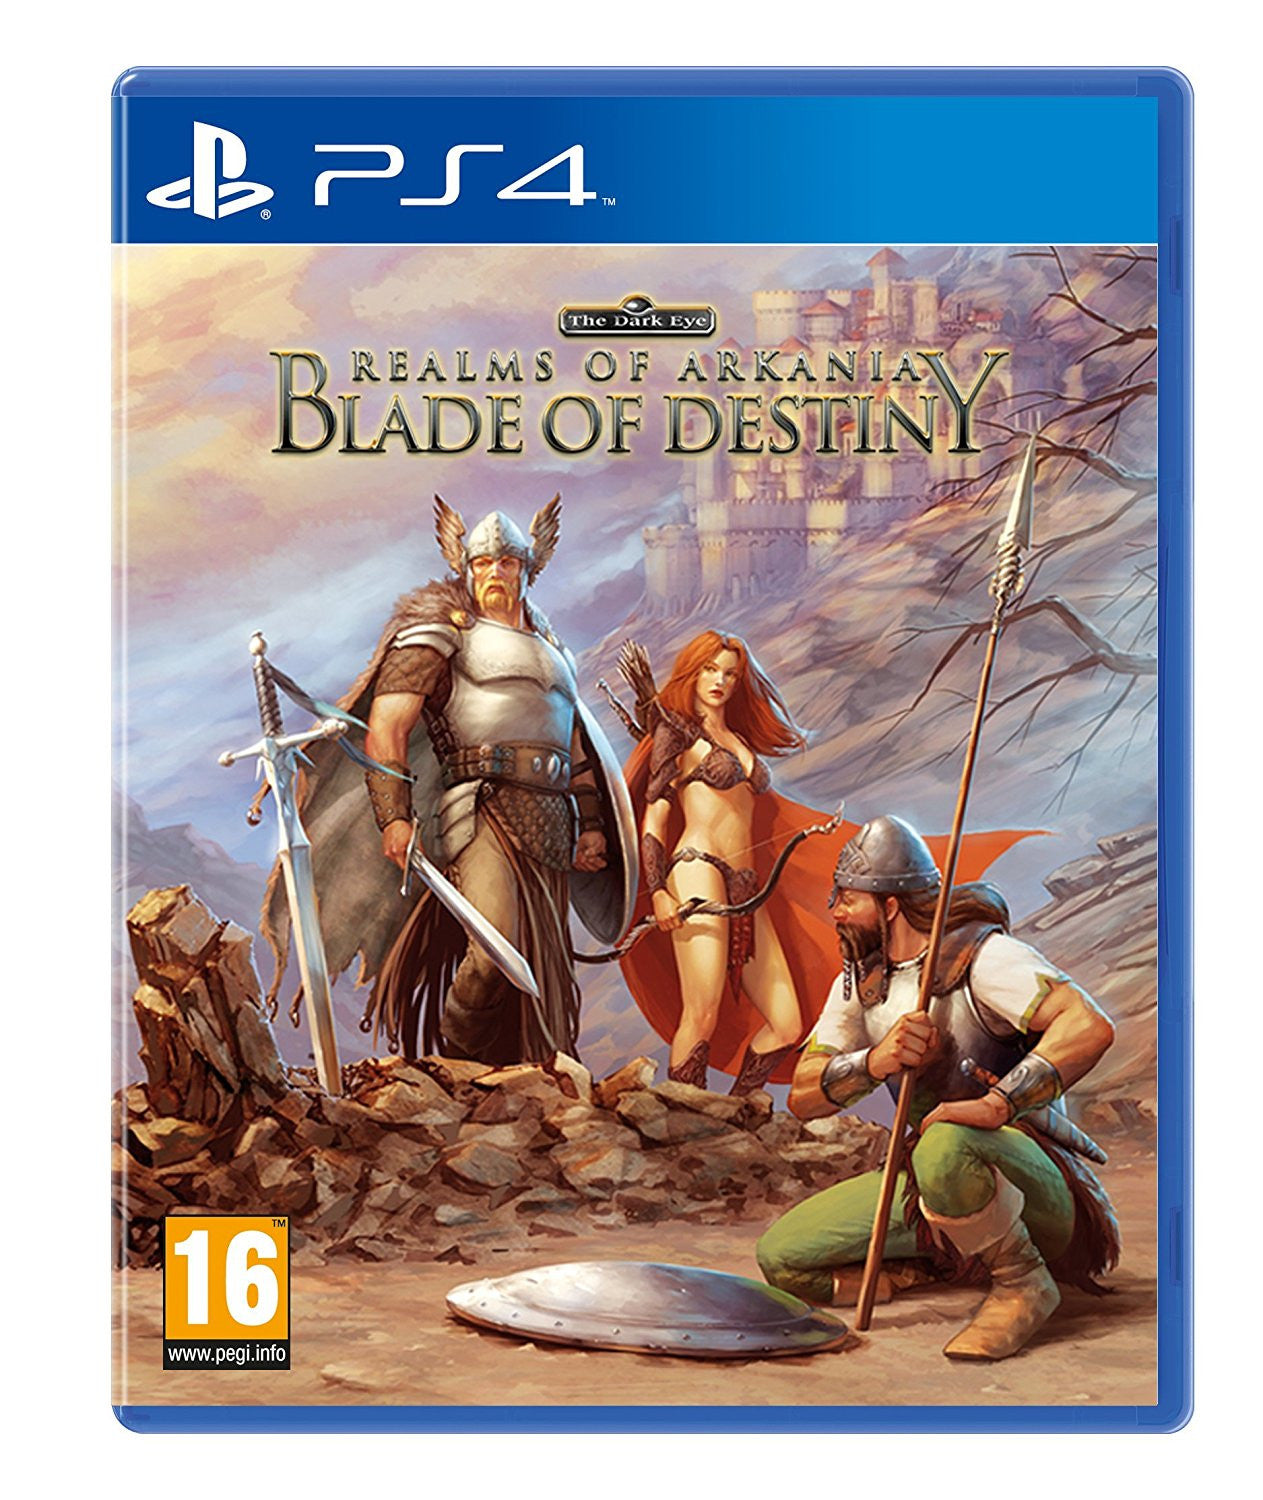 REALMS OF ARKANIA- BLADE OF DESTINY - PS4